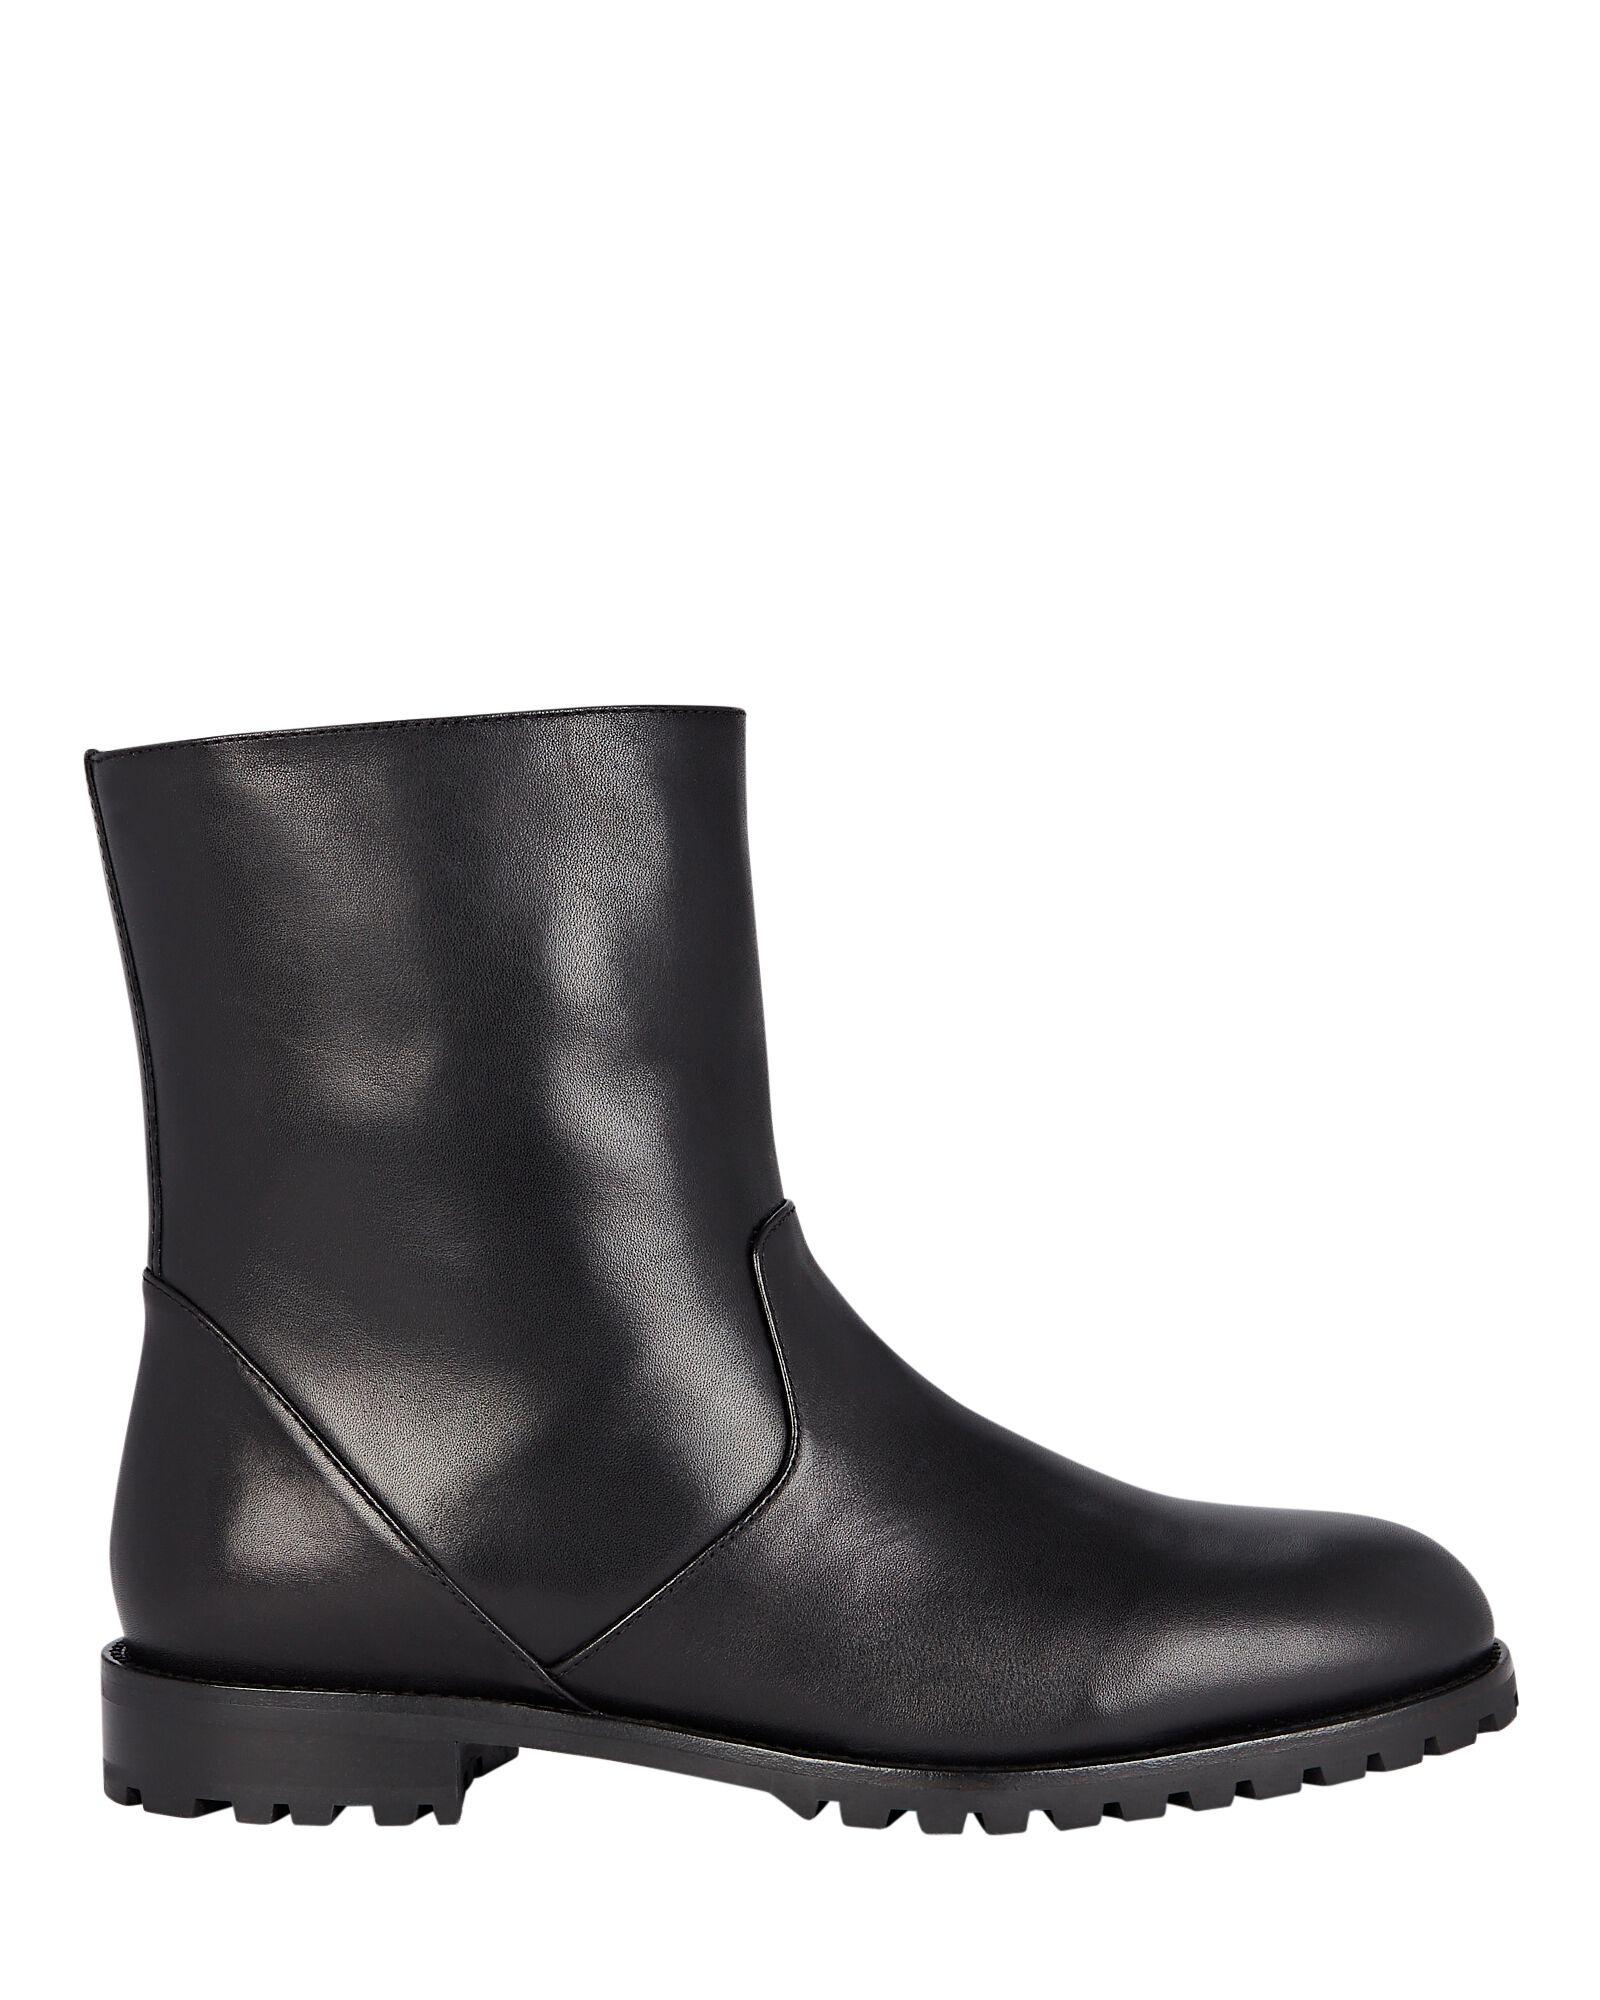 Motosa Leather Flat Ankle Boots, BLACK, hi-res